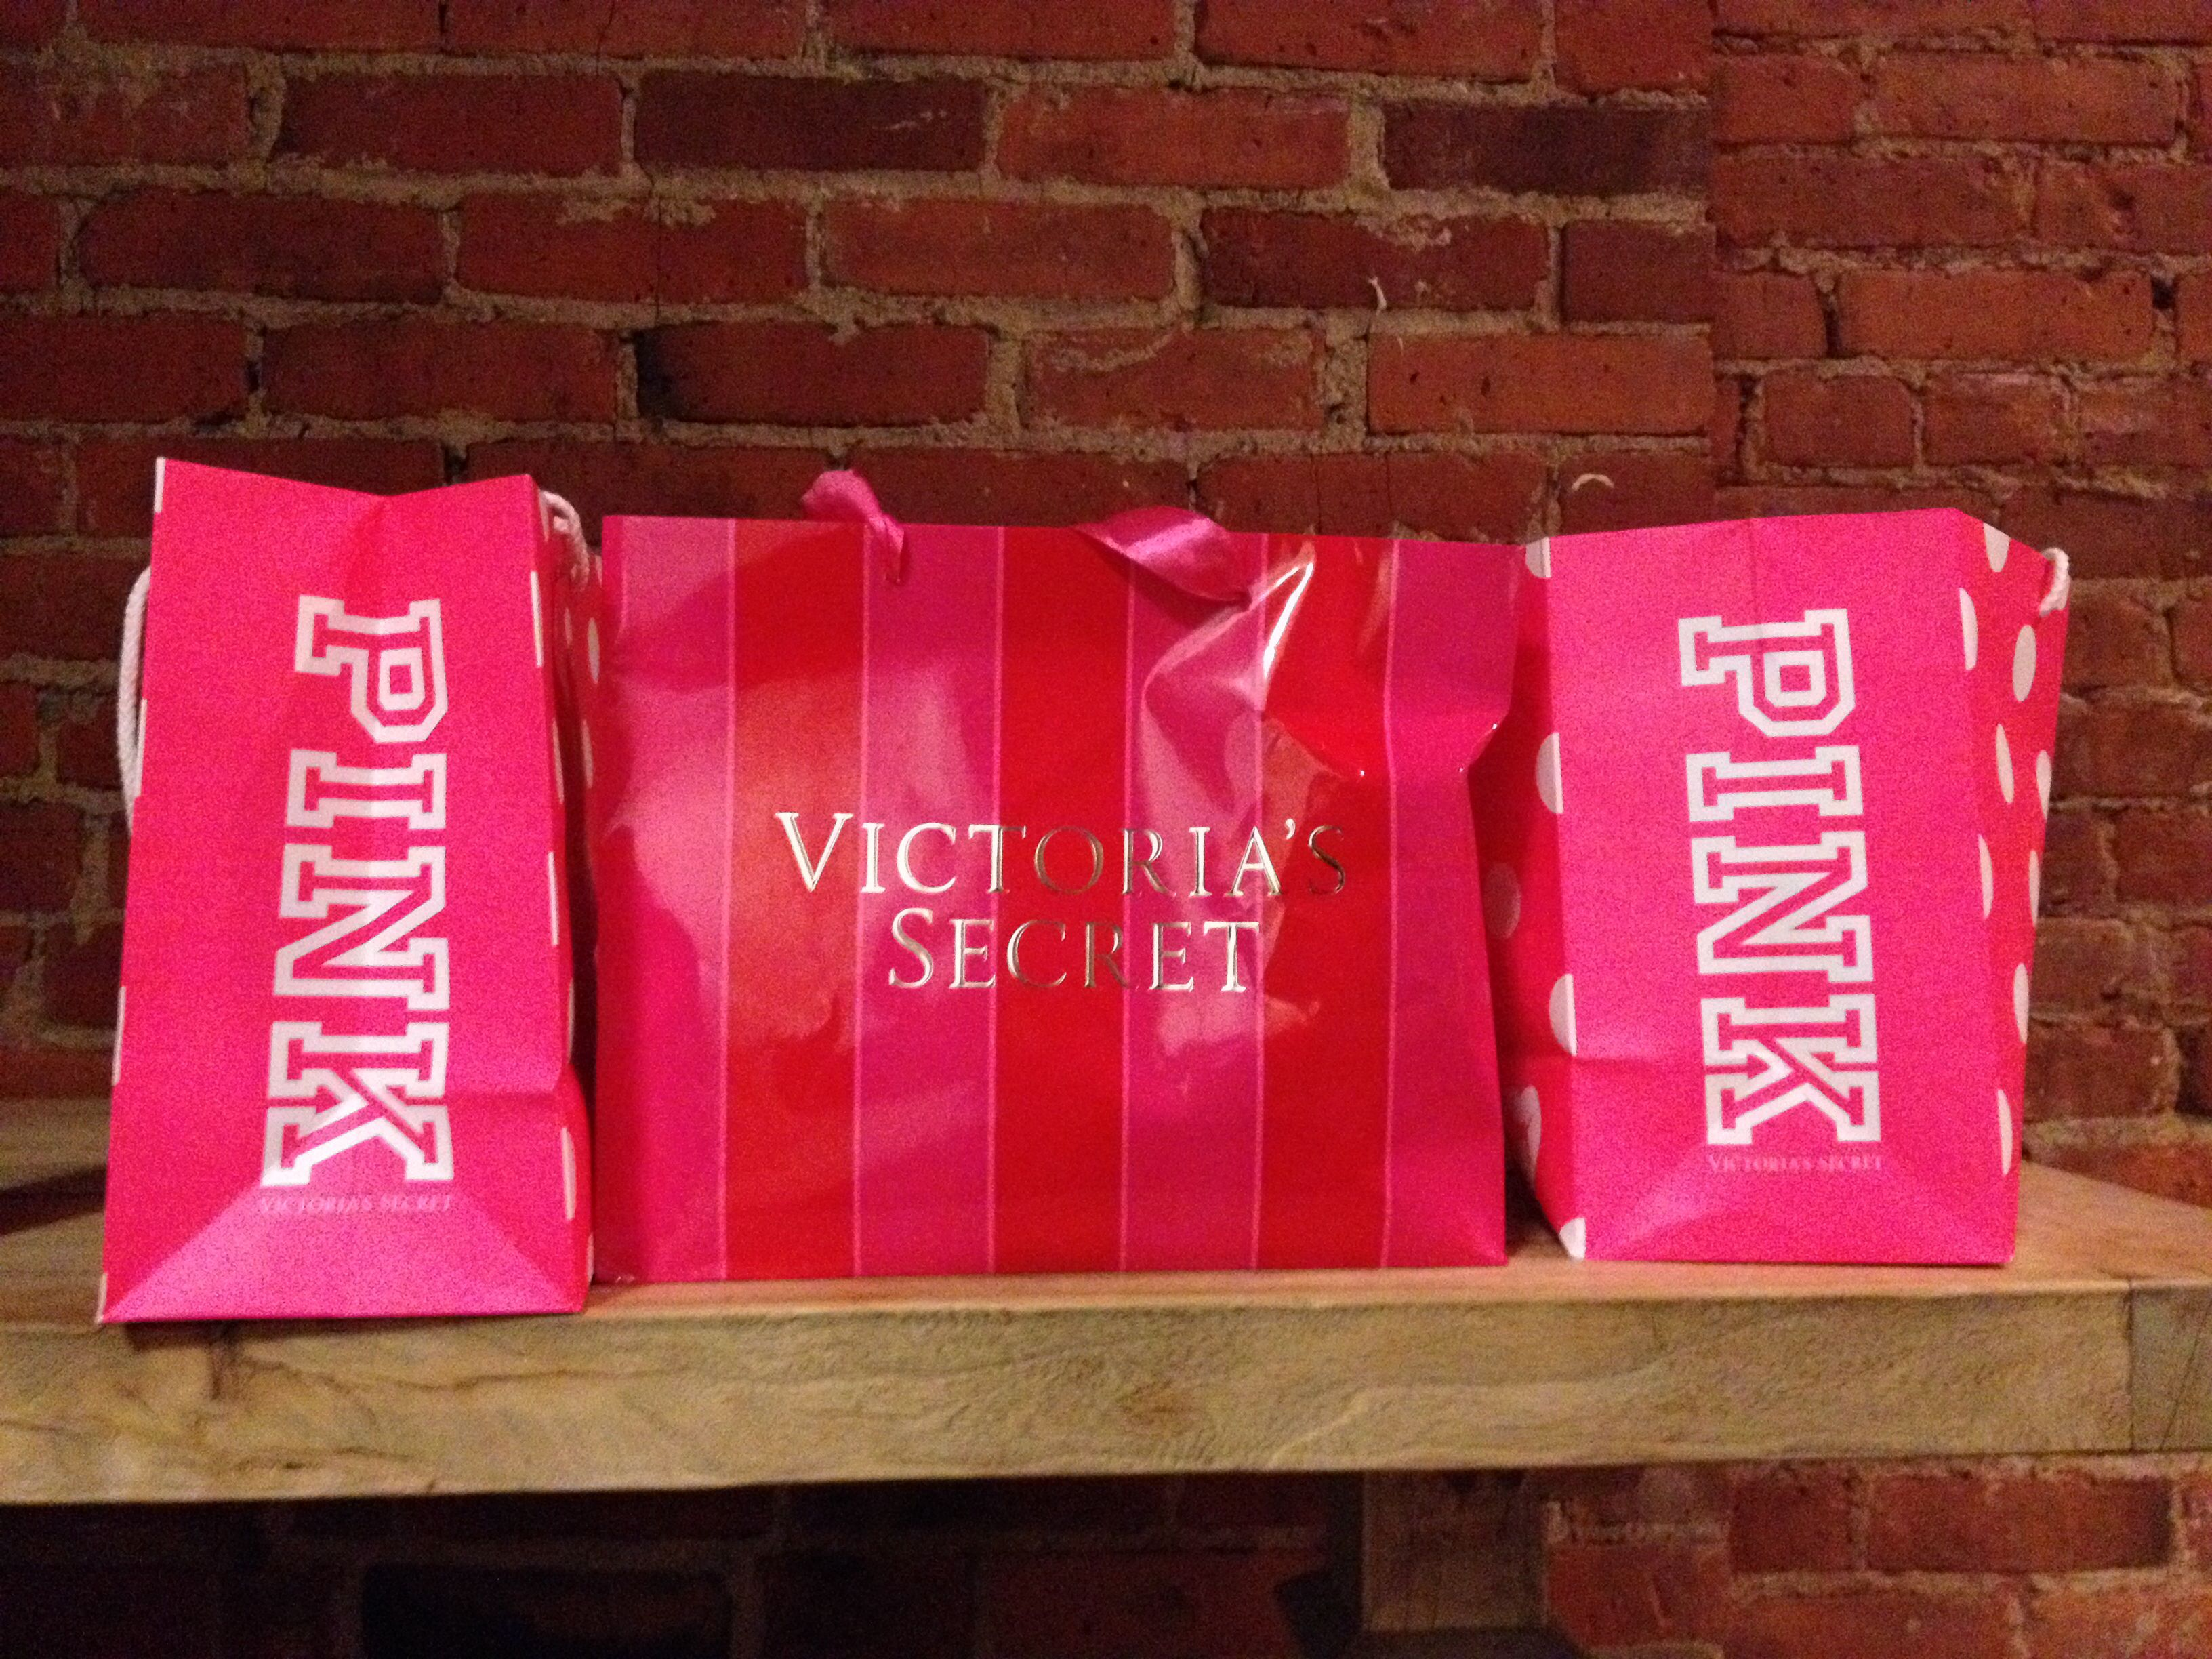 Victoria's Secret and pink shopping bags